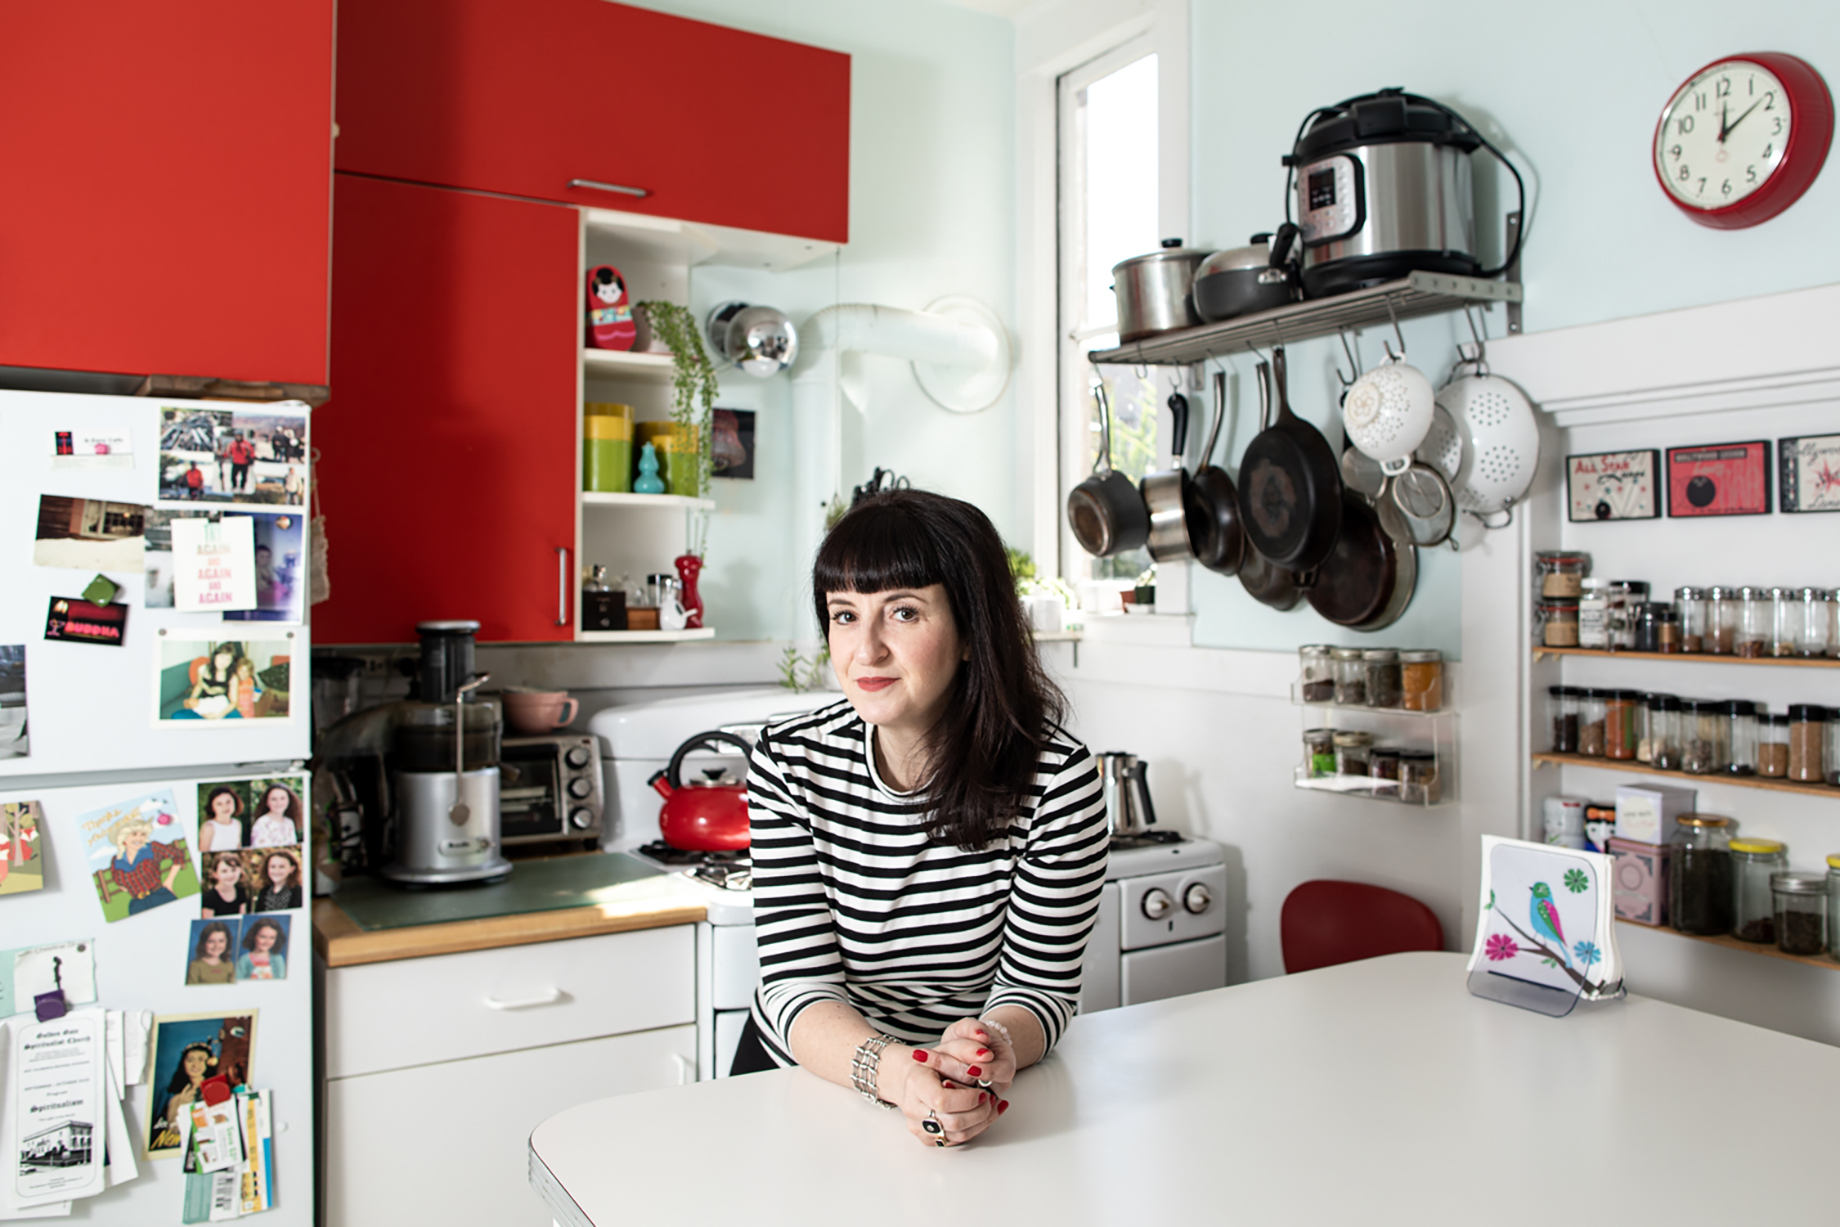 Woman in an organized kitchen with bright red cabinets shot by Jaime Borschuk for Women at Home project